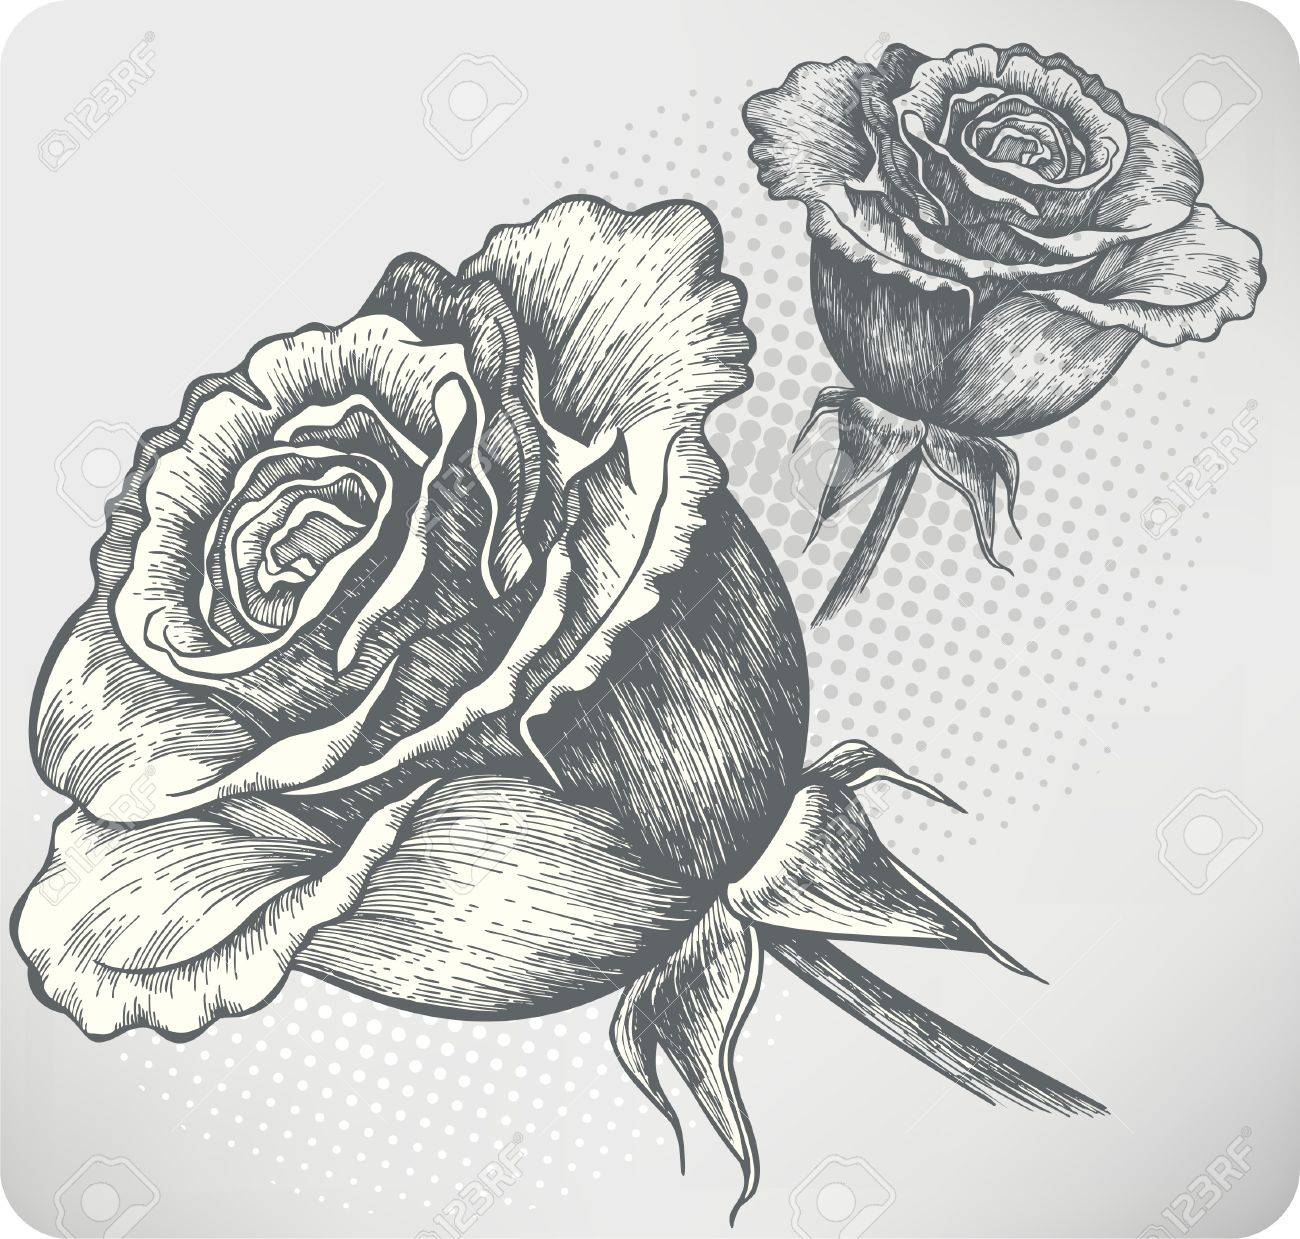 Blooming Rose vintage, hand-drawing. Vector illustration. Stock Vector - 13601581